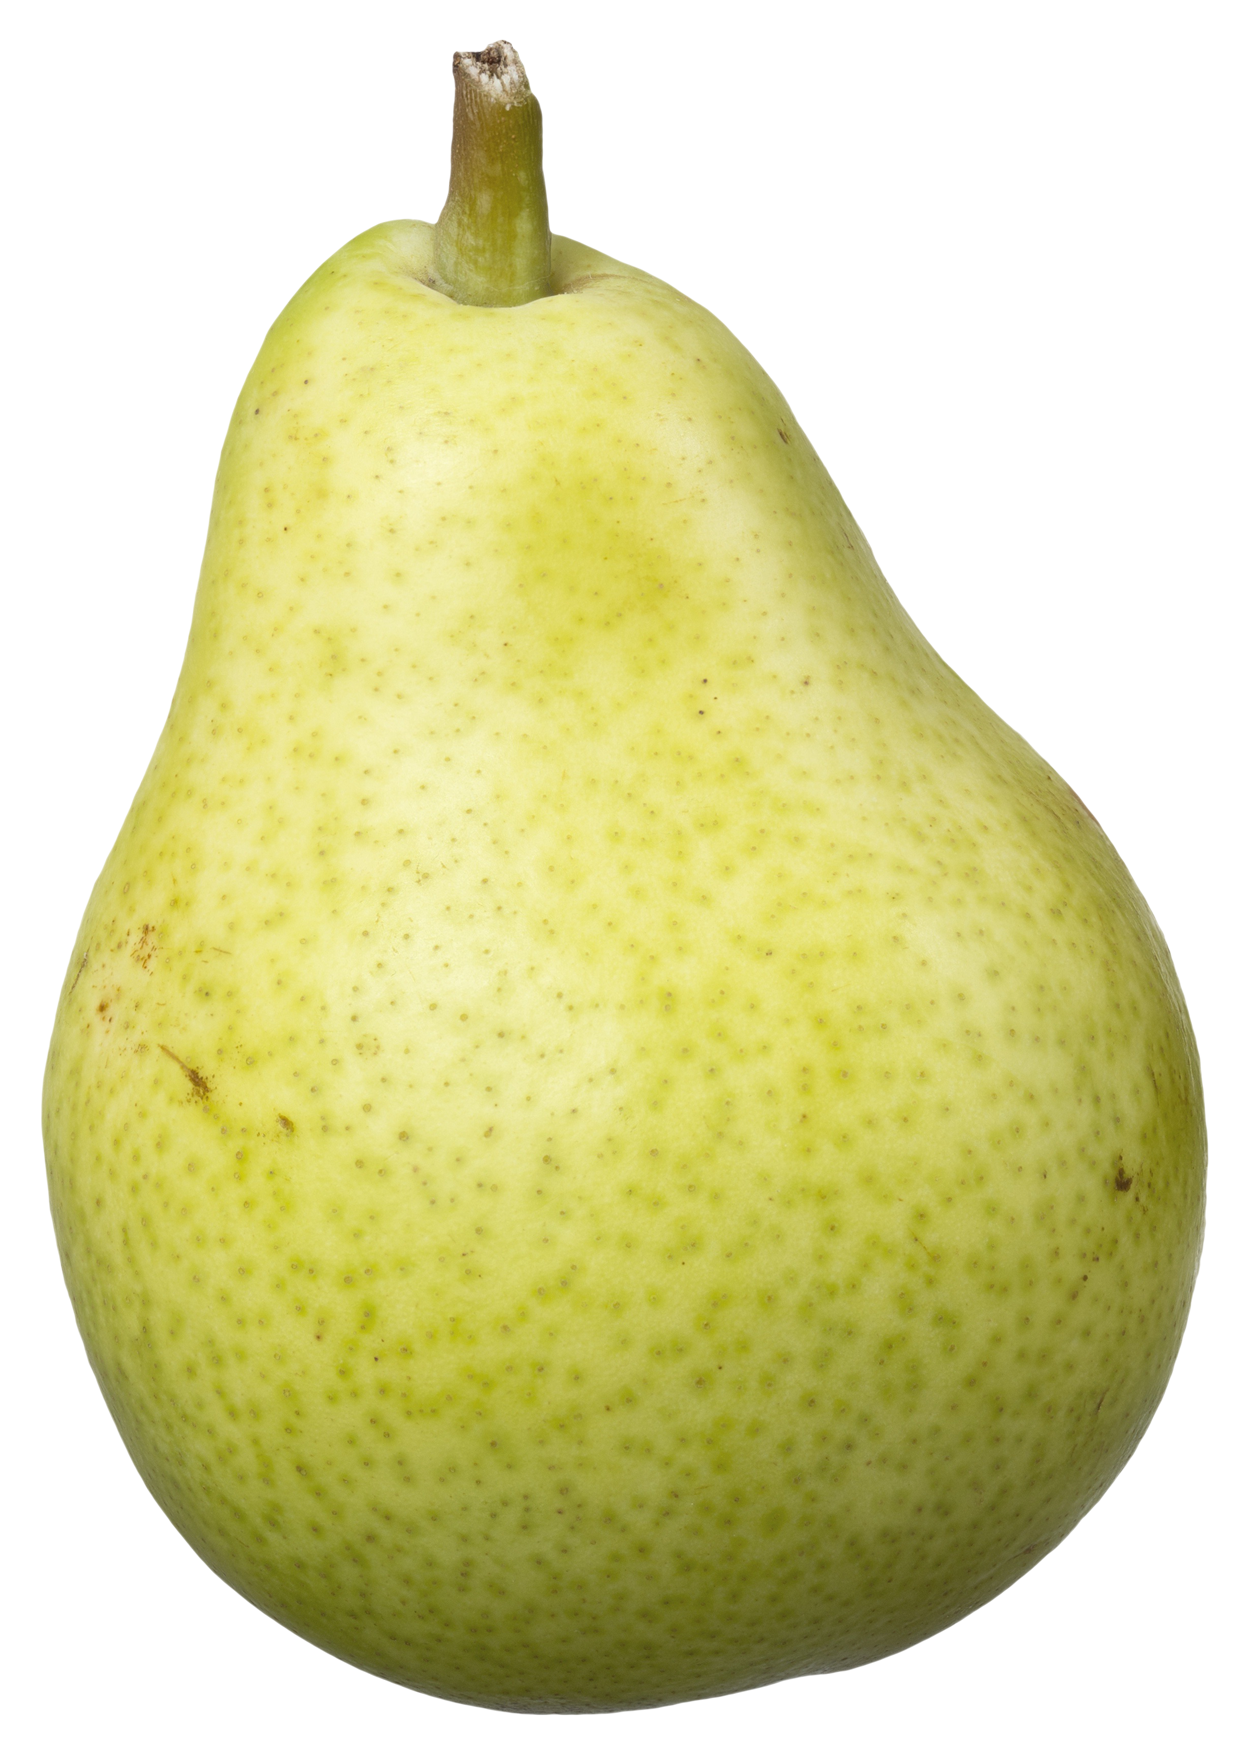 png freeuse Pear Fruits PNG Image